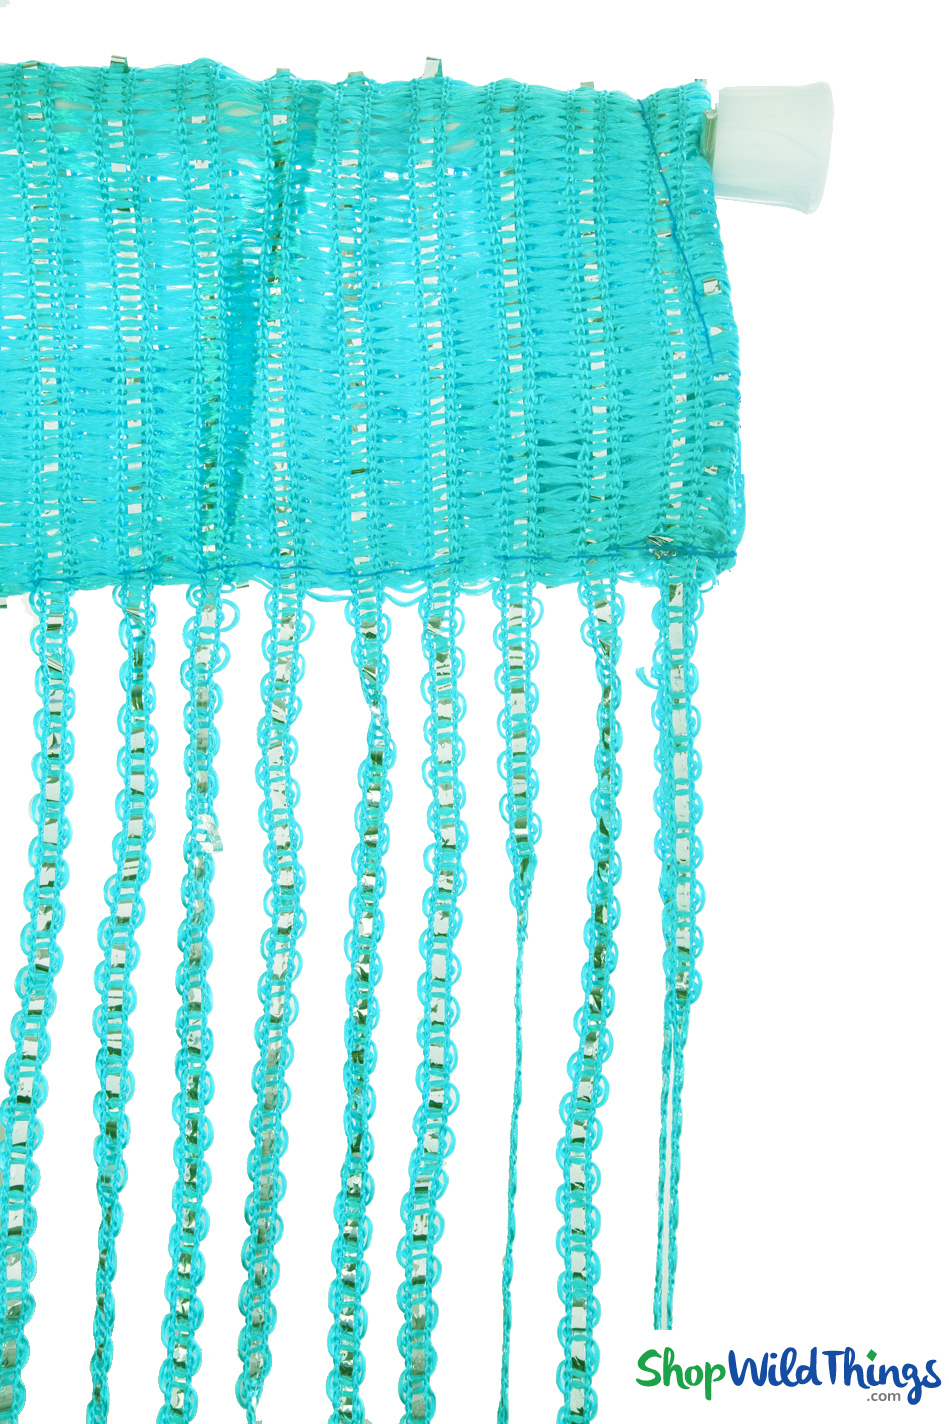 String Curtains - Sparkle Turquoise w/Tension Rod